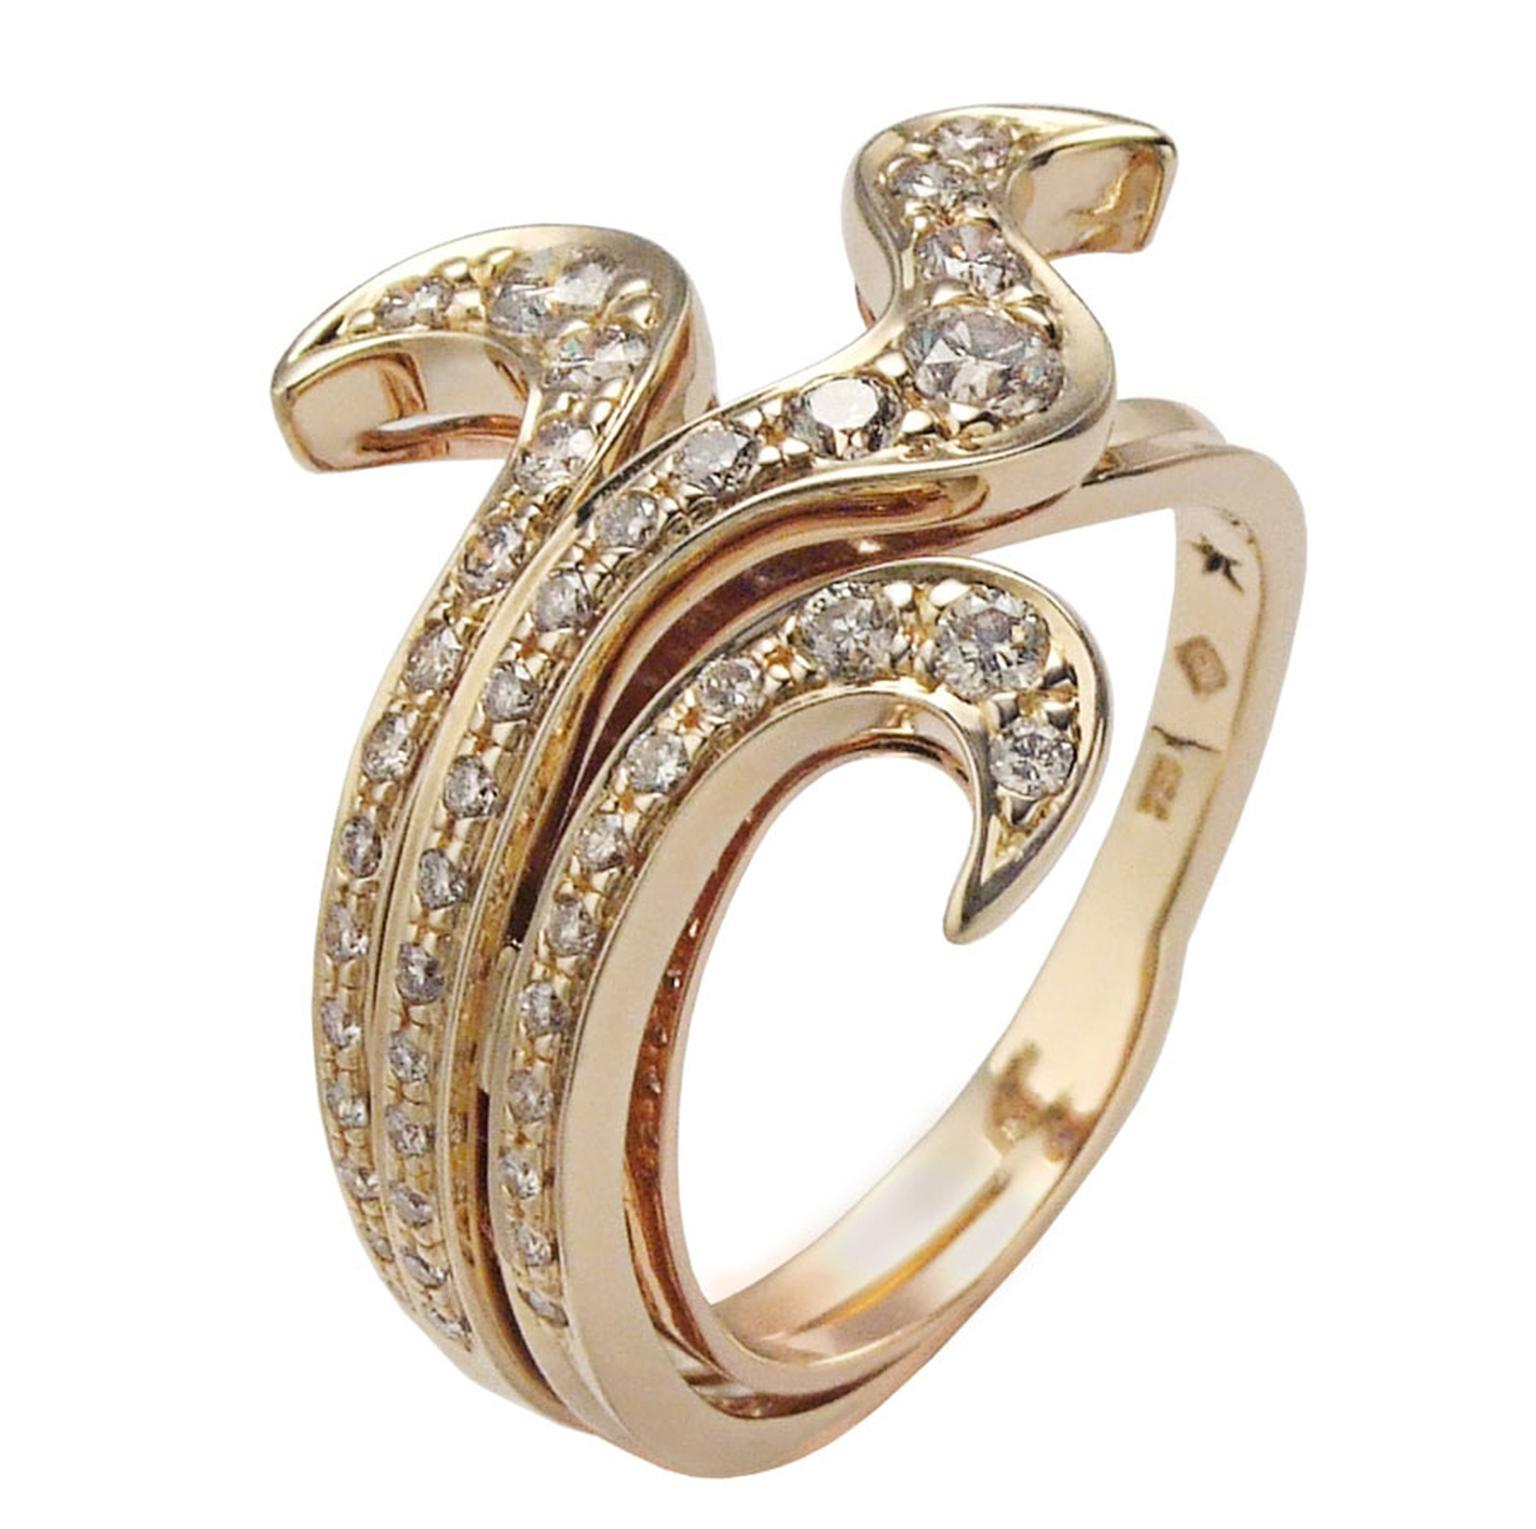 H-Stern-Ring-in-yellow-and-rose-gold-with-diamonds-2.jpg